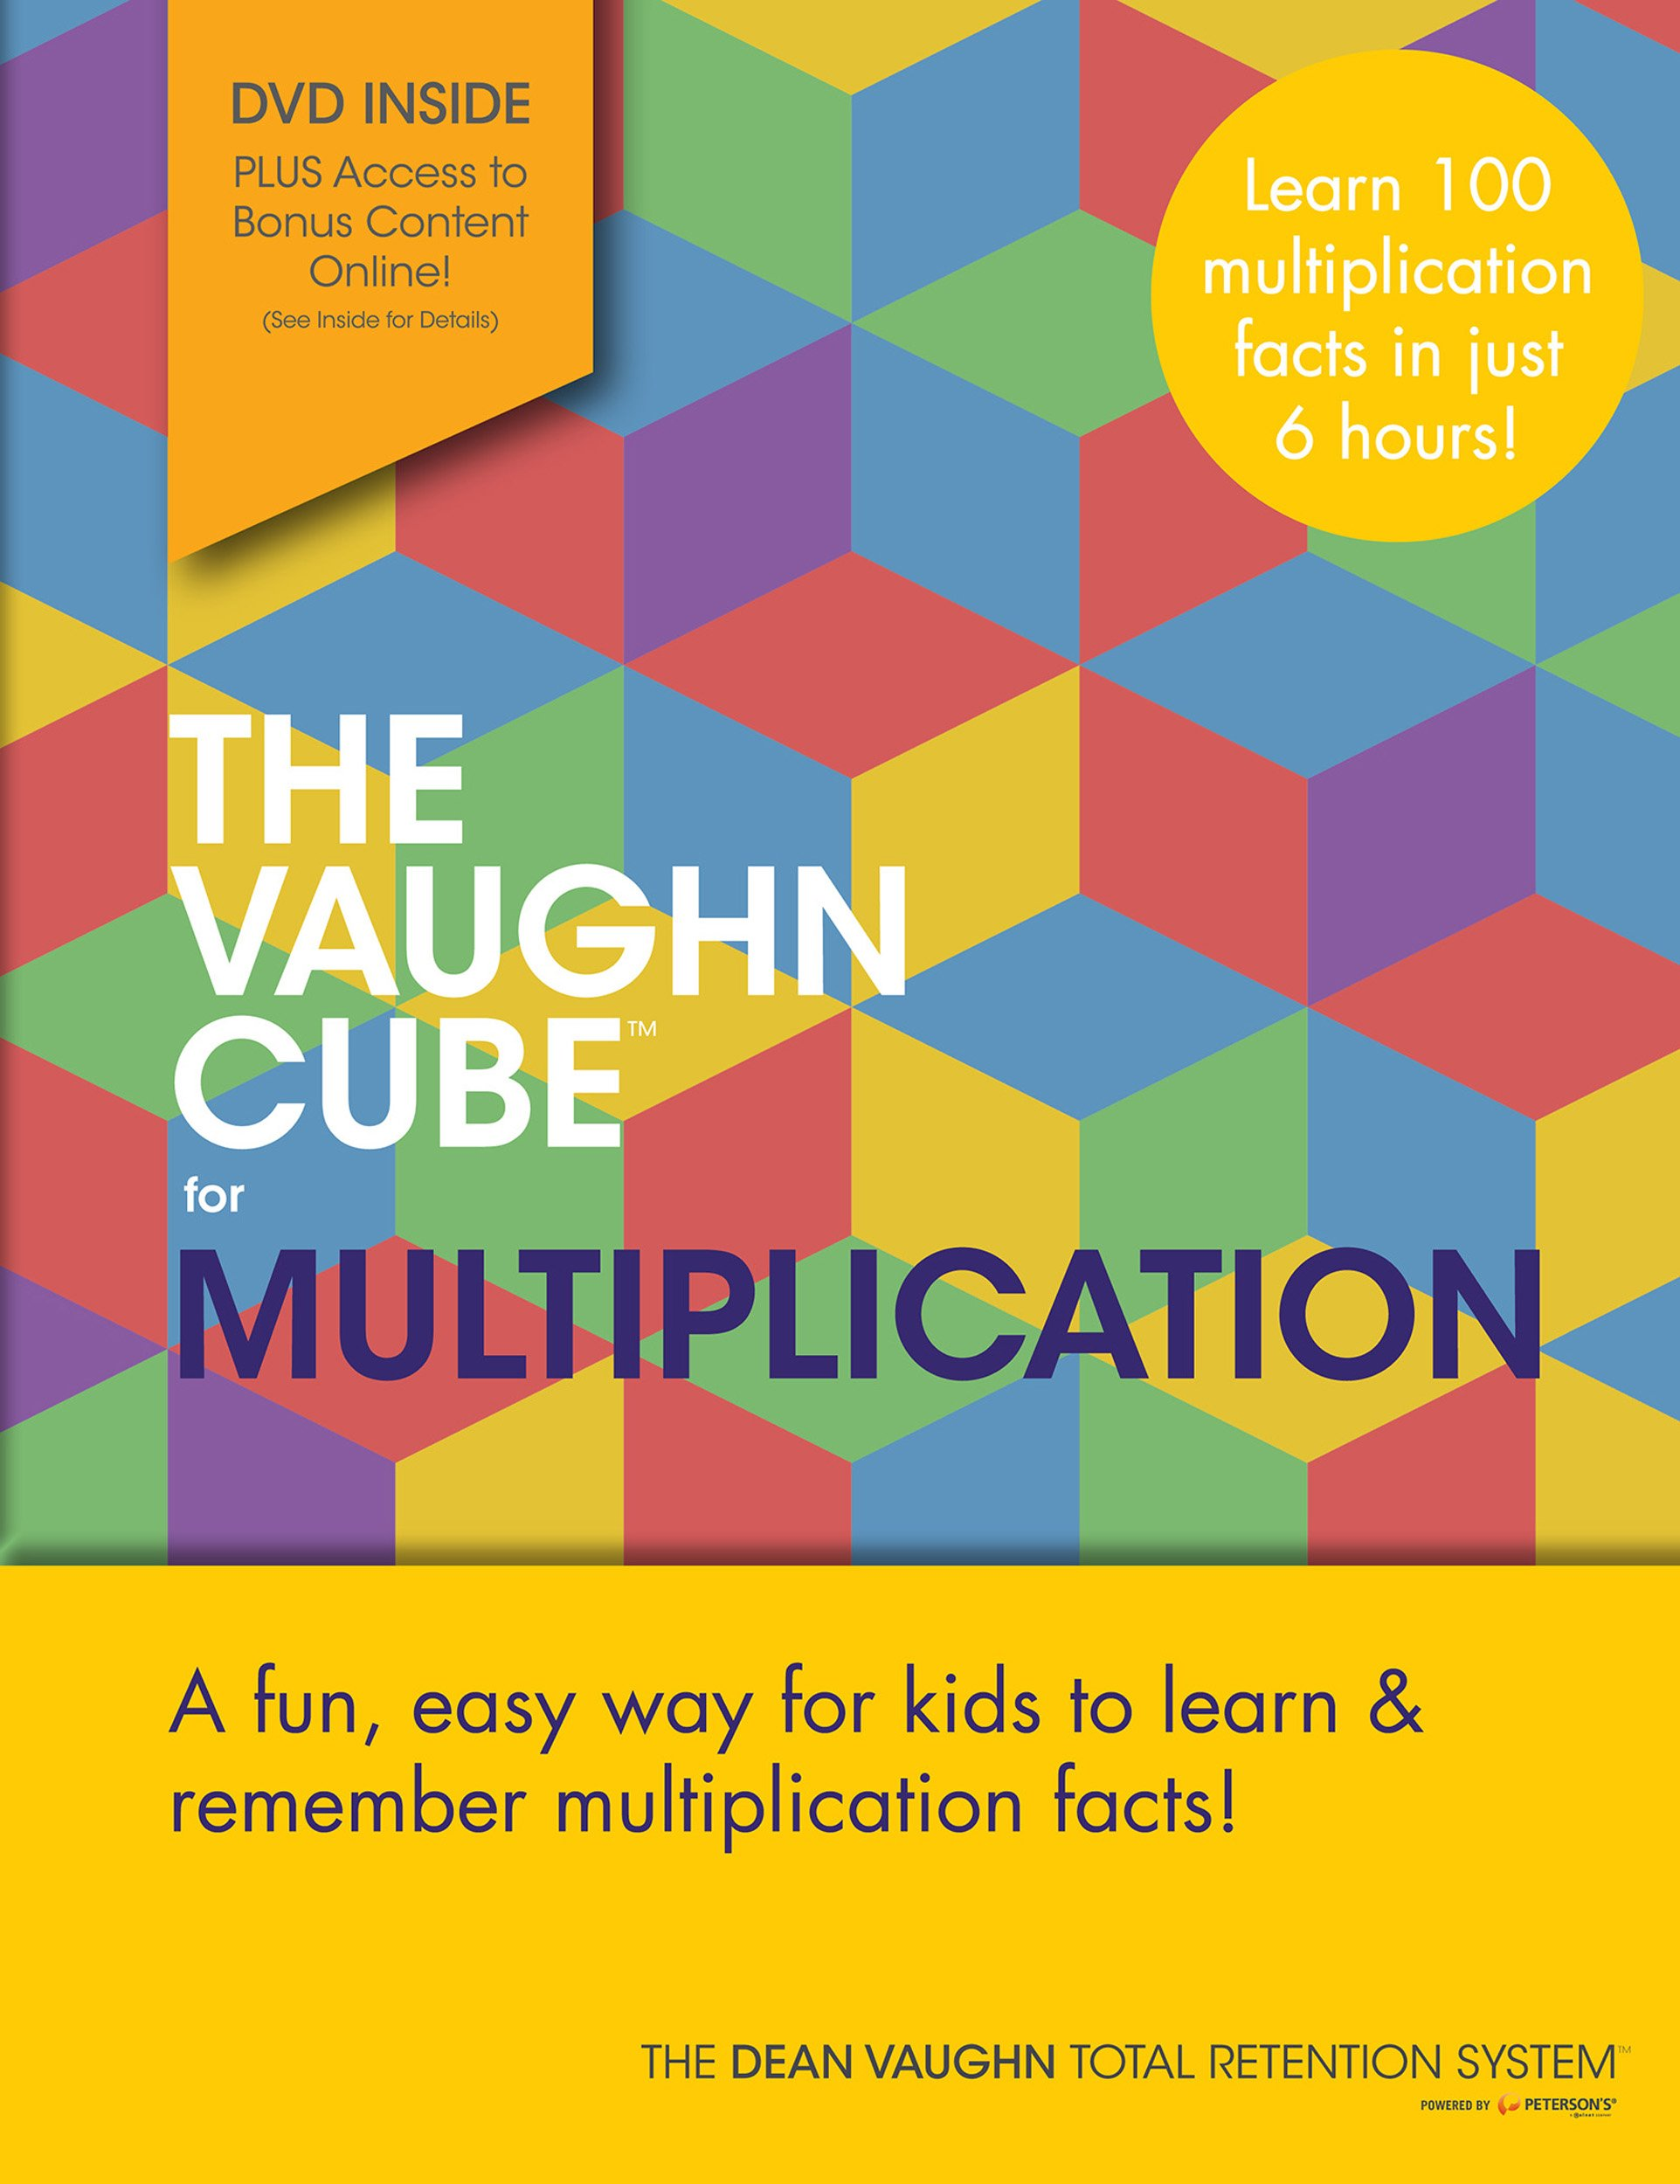 """The Vaughn Cube"""" for Multiplication"""